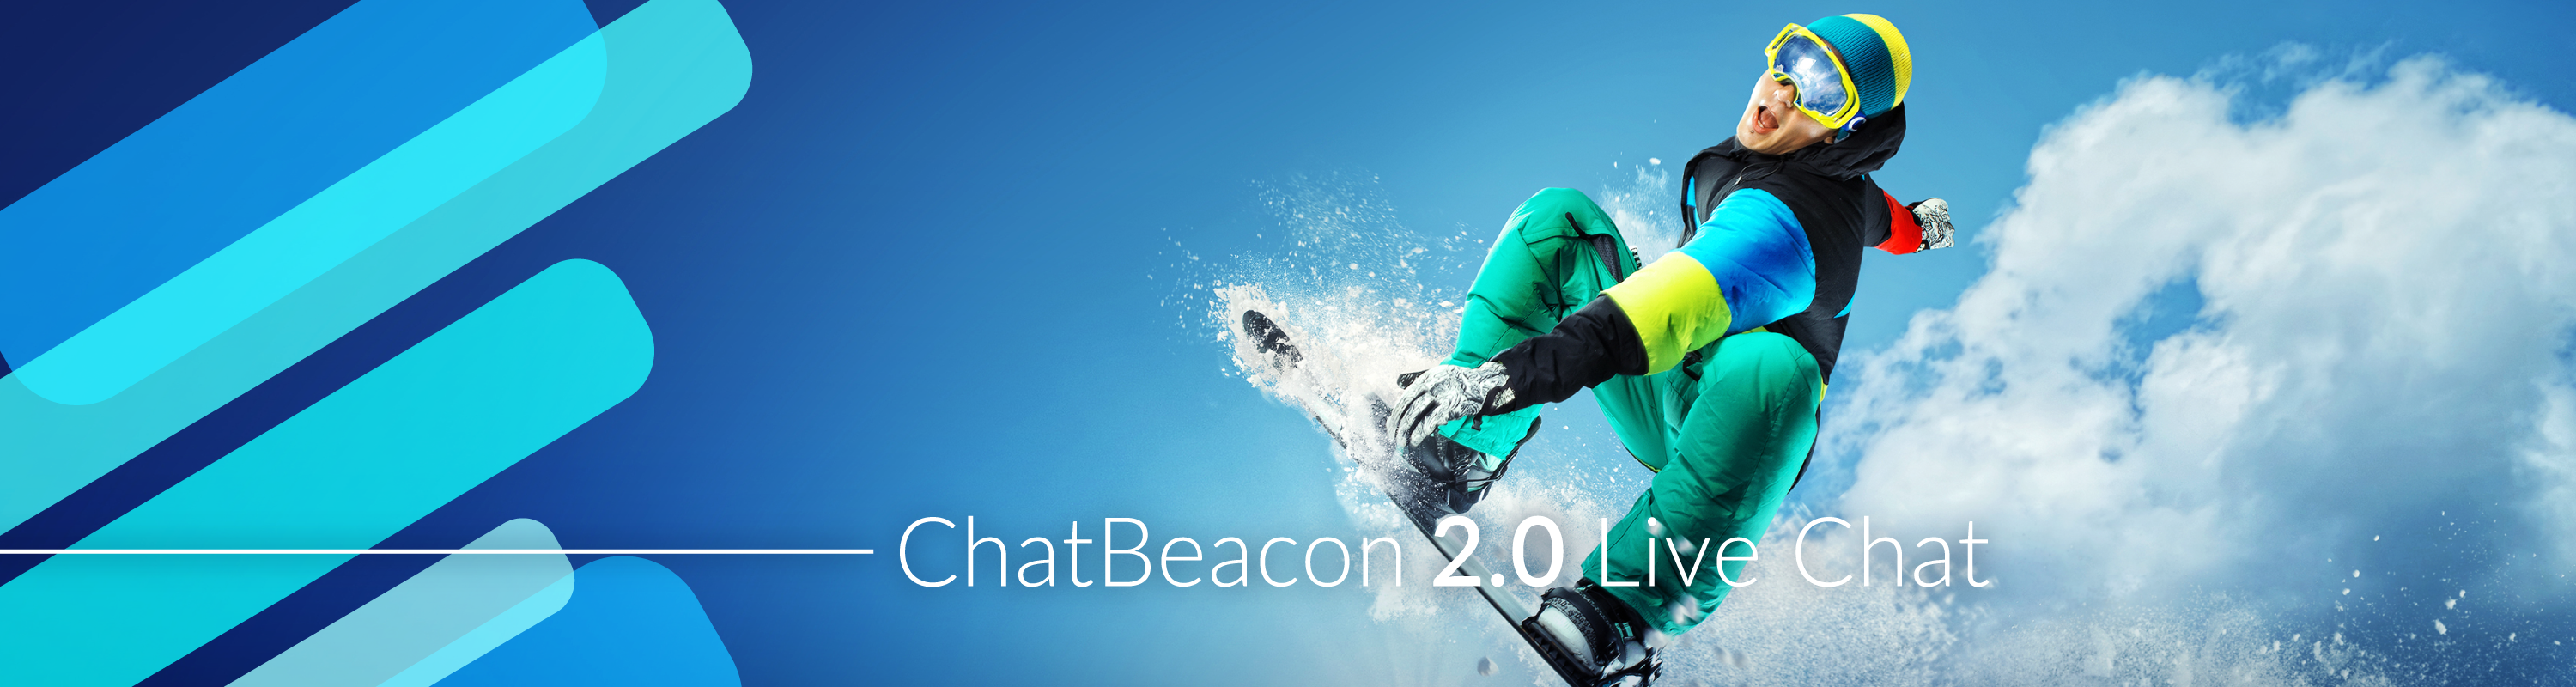 ChatBeacon Live Chat